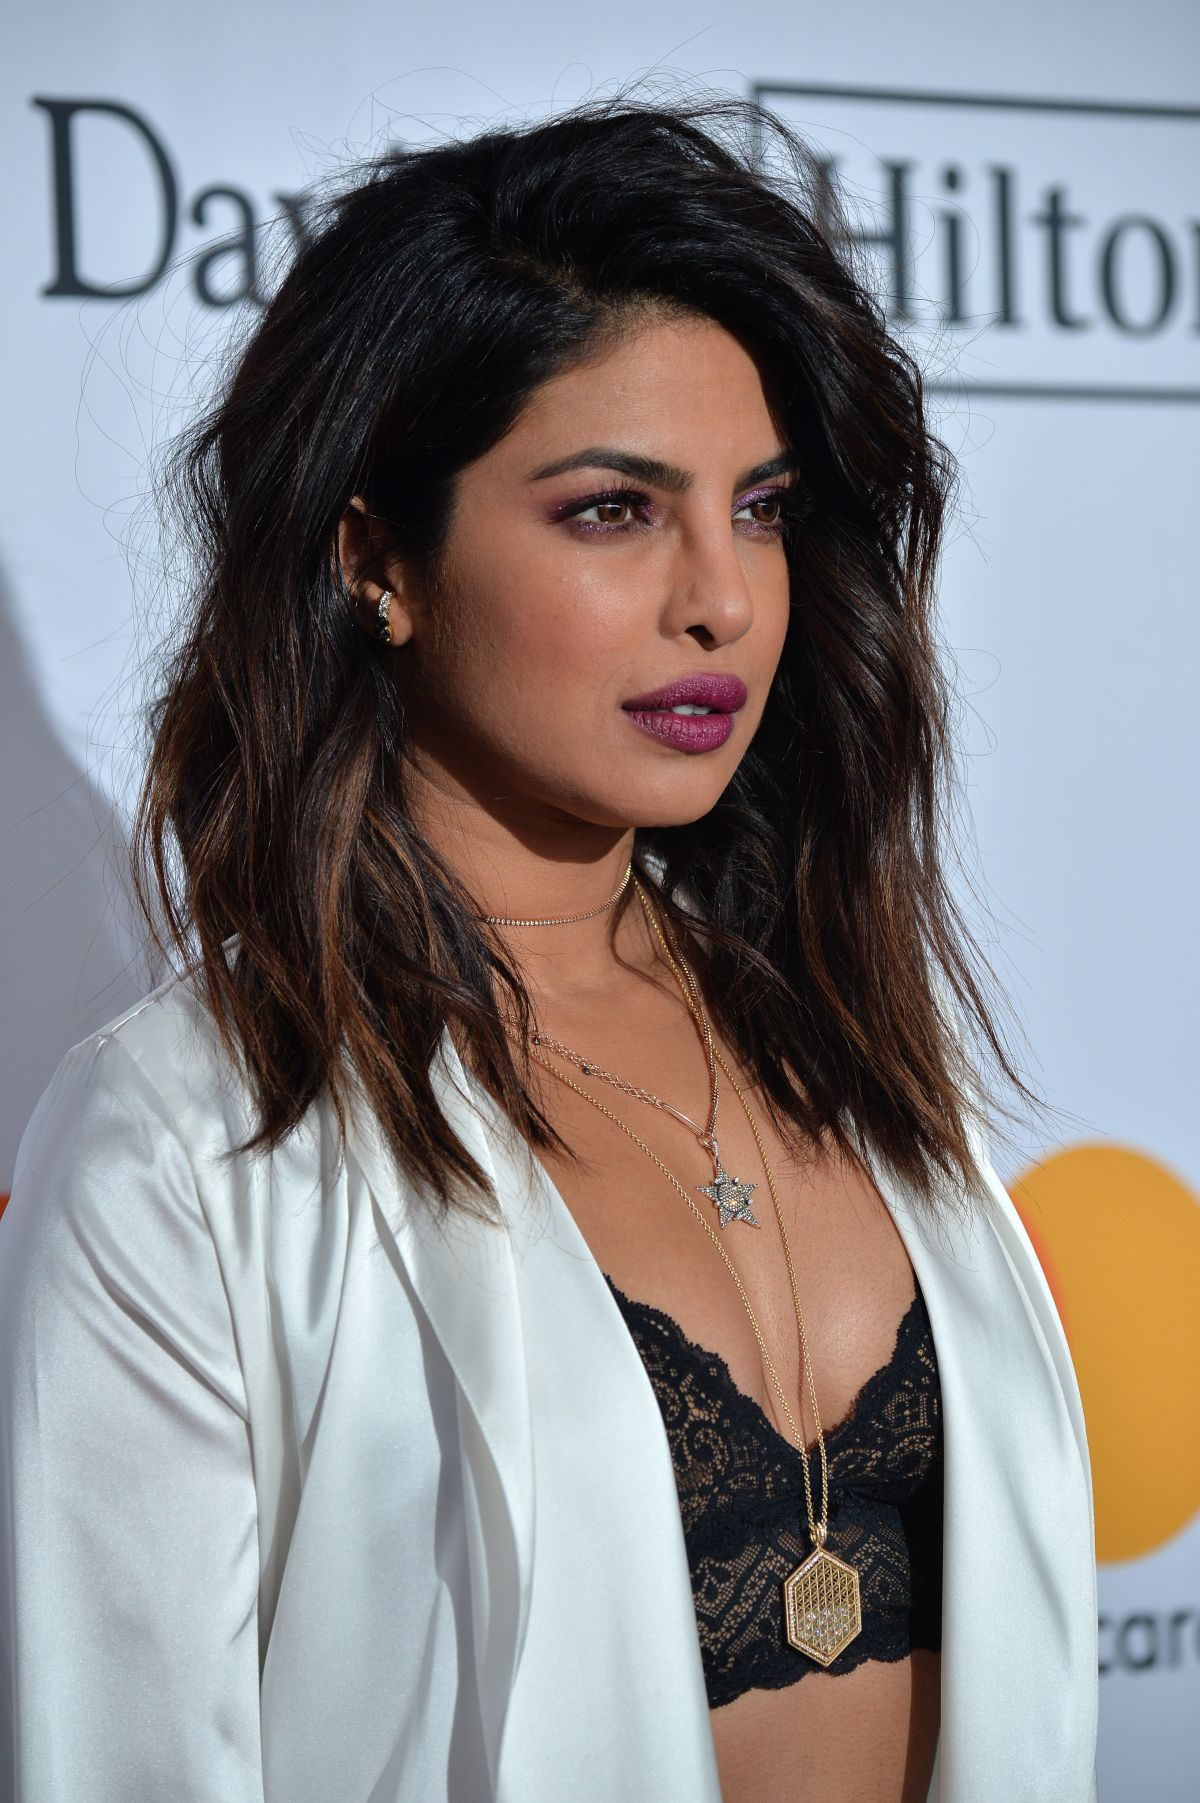 priyanka chopra - photo #50